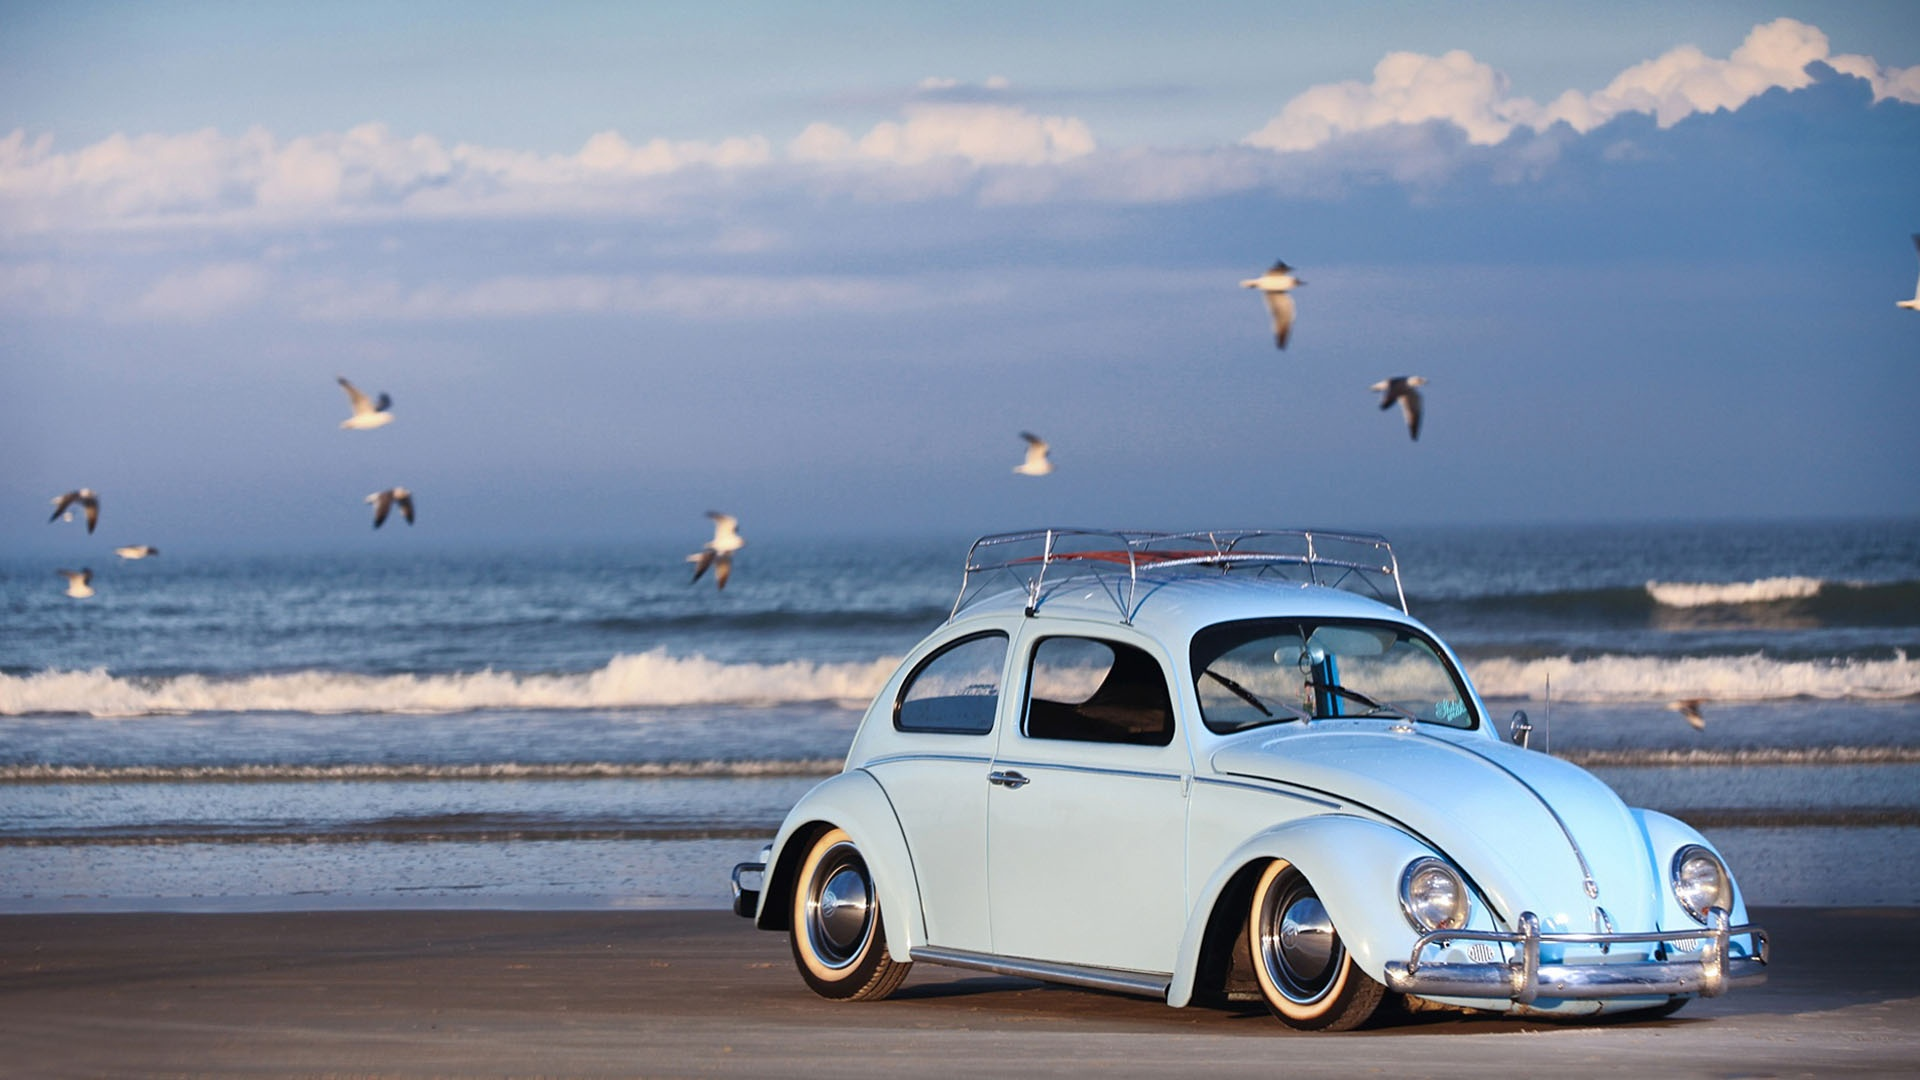 Awesome Volkswagen Wallpaper 23438 1920x1080 Px